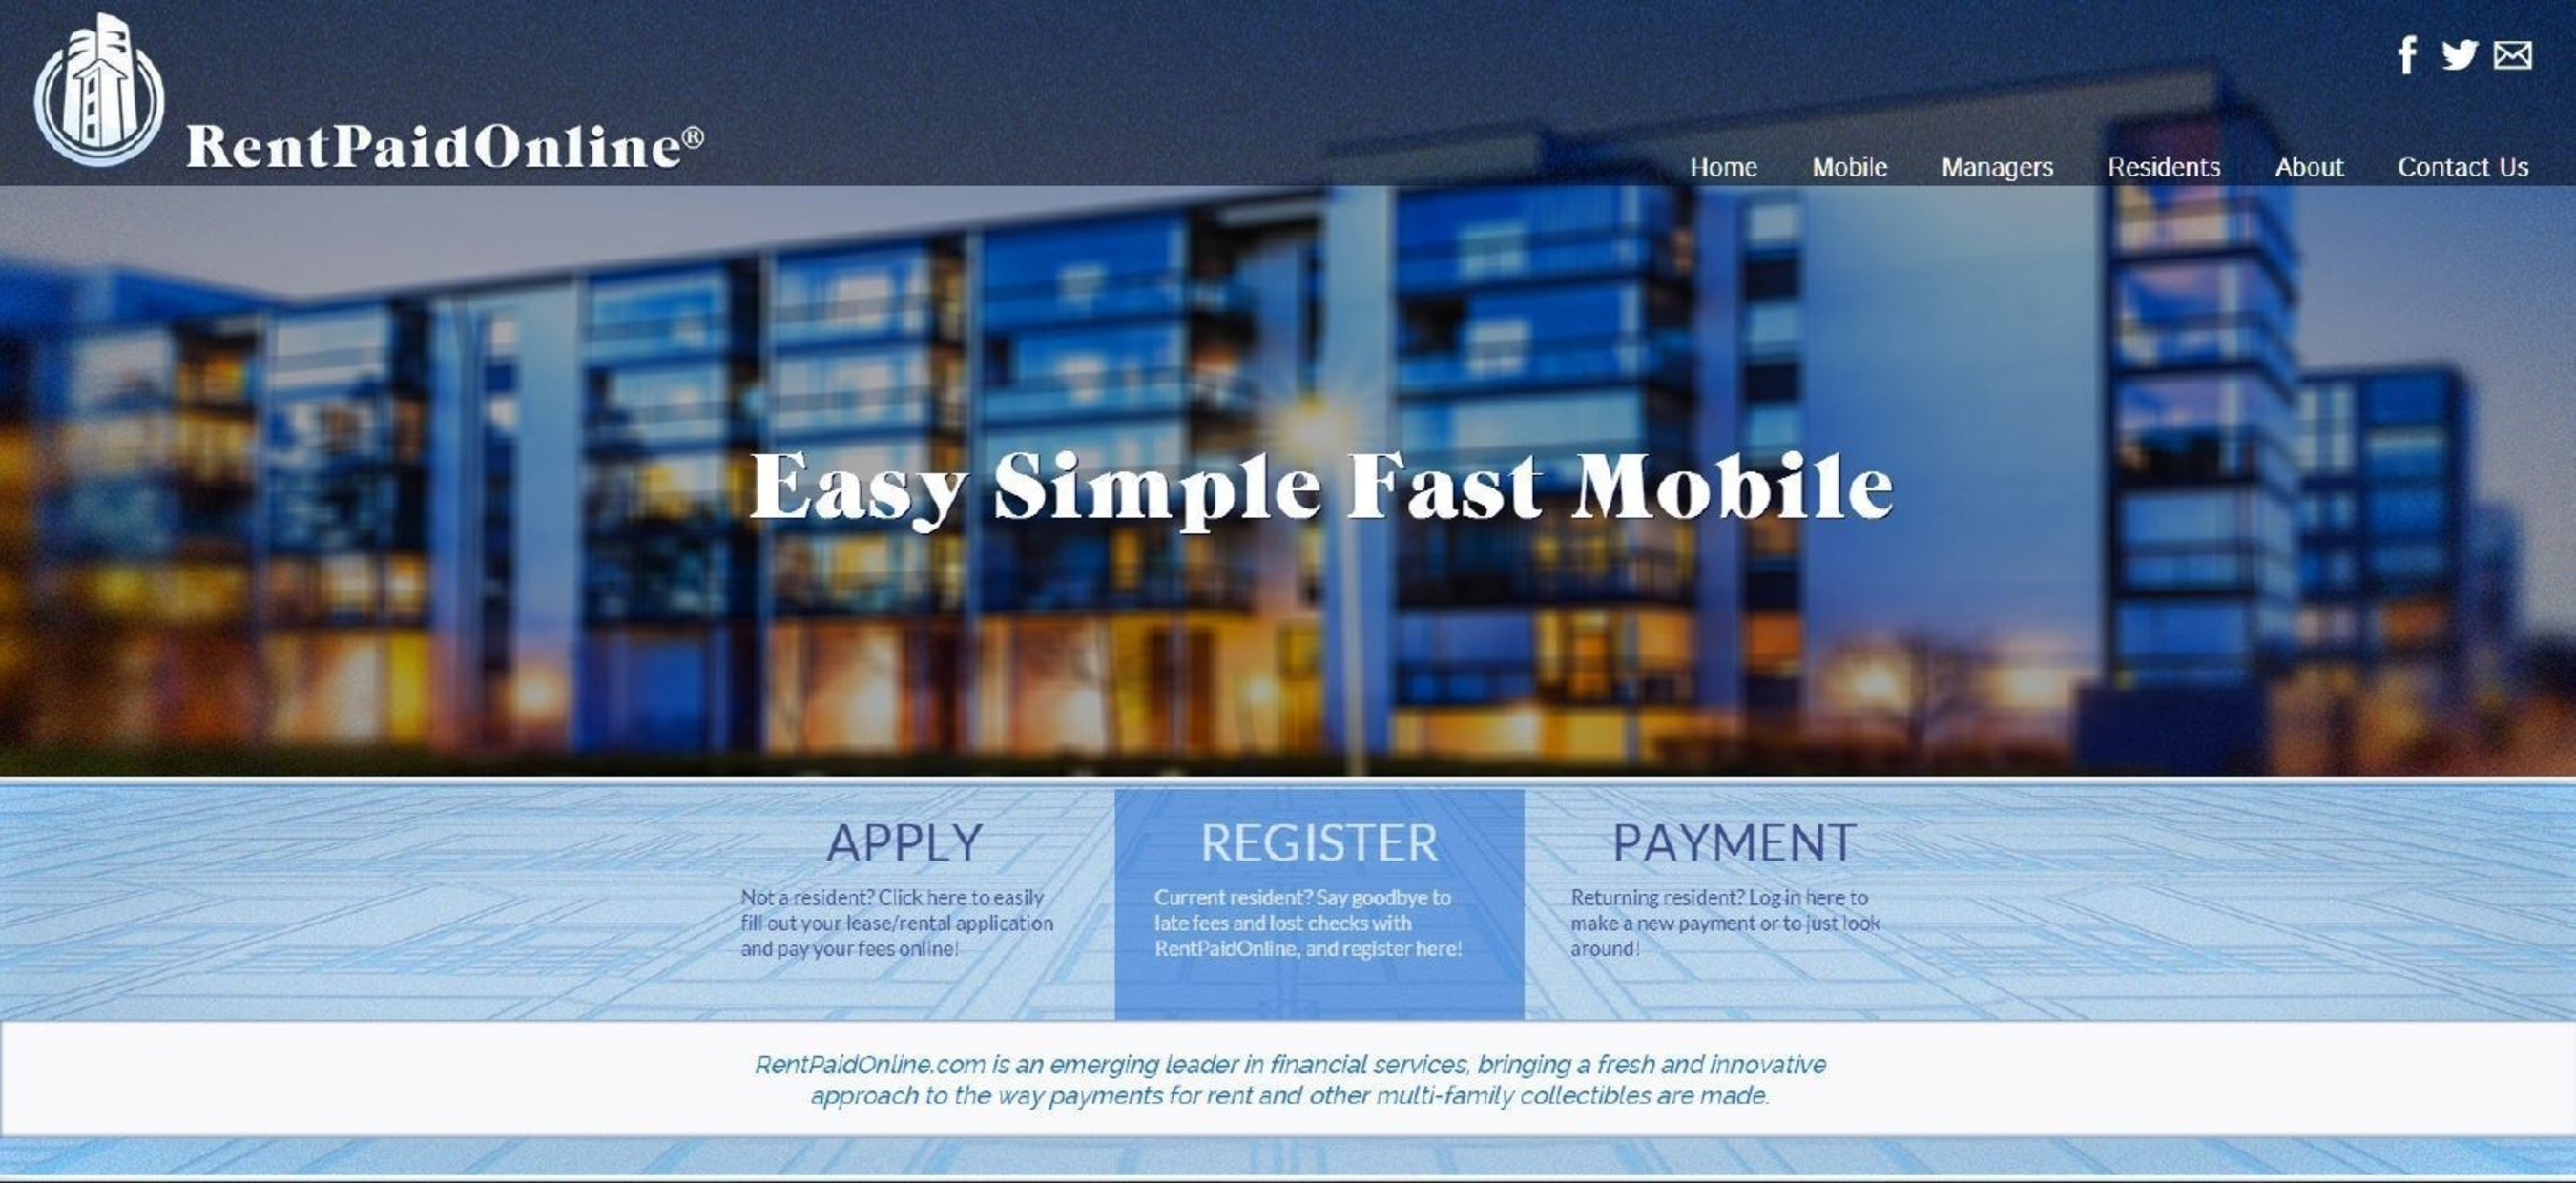 RentPaidOnline Uveils its New Look